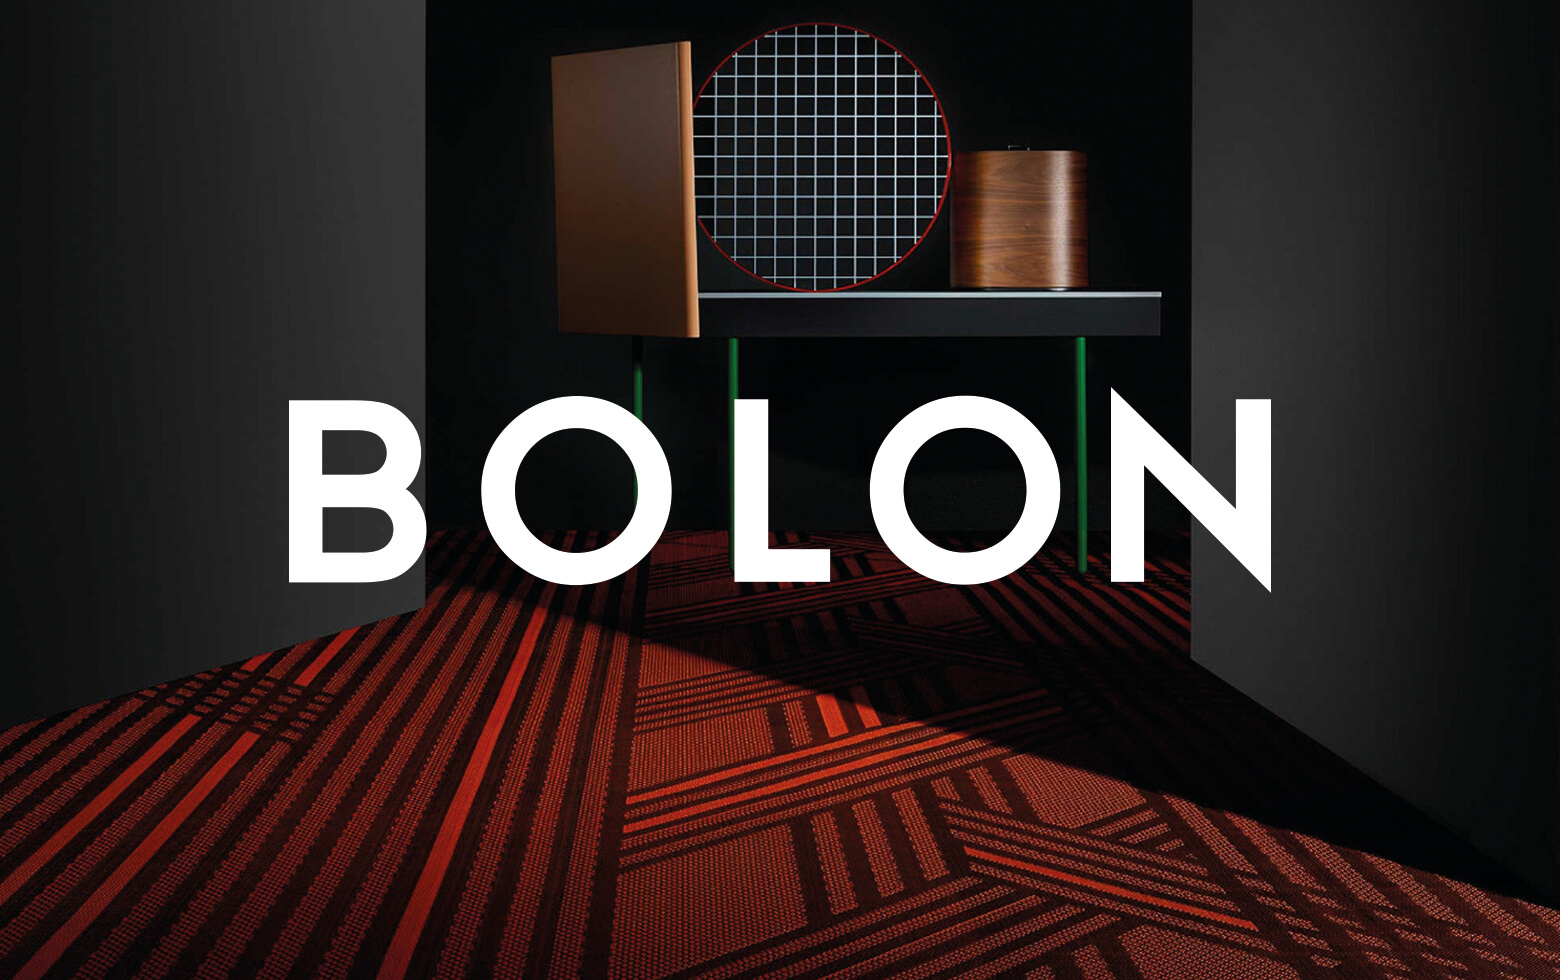 THE STORY OF BOLON